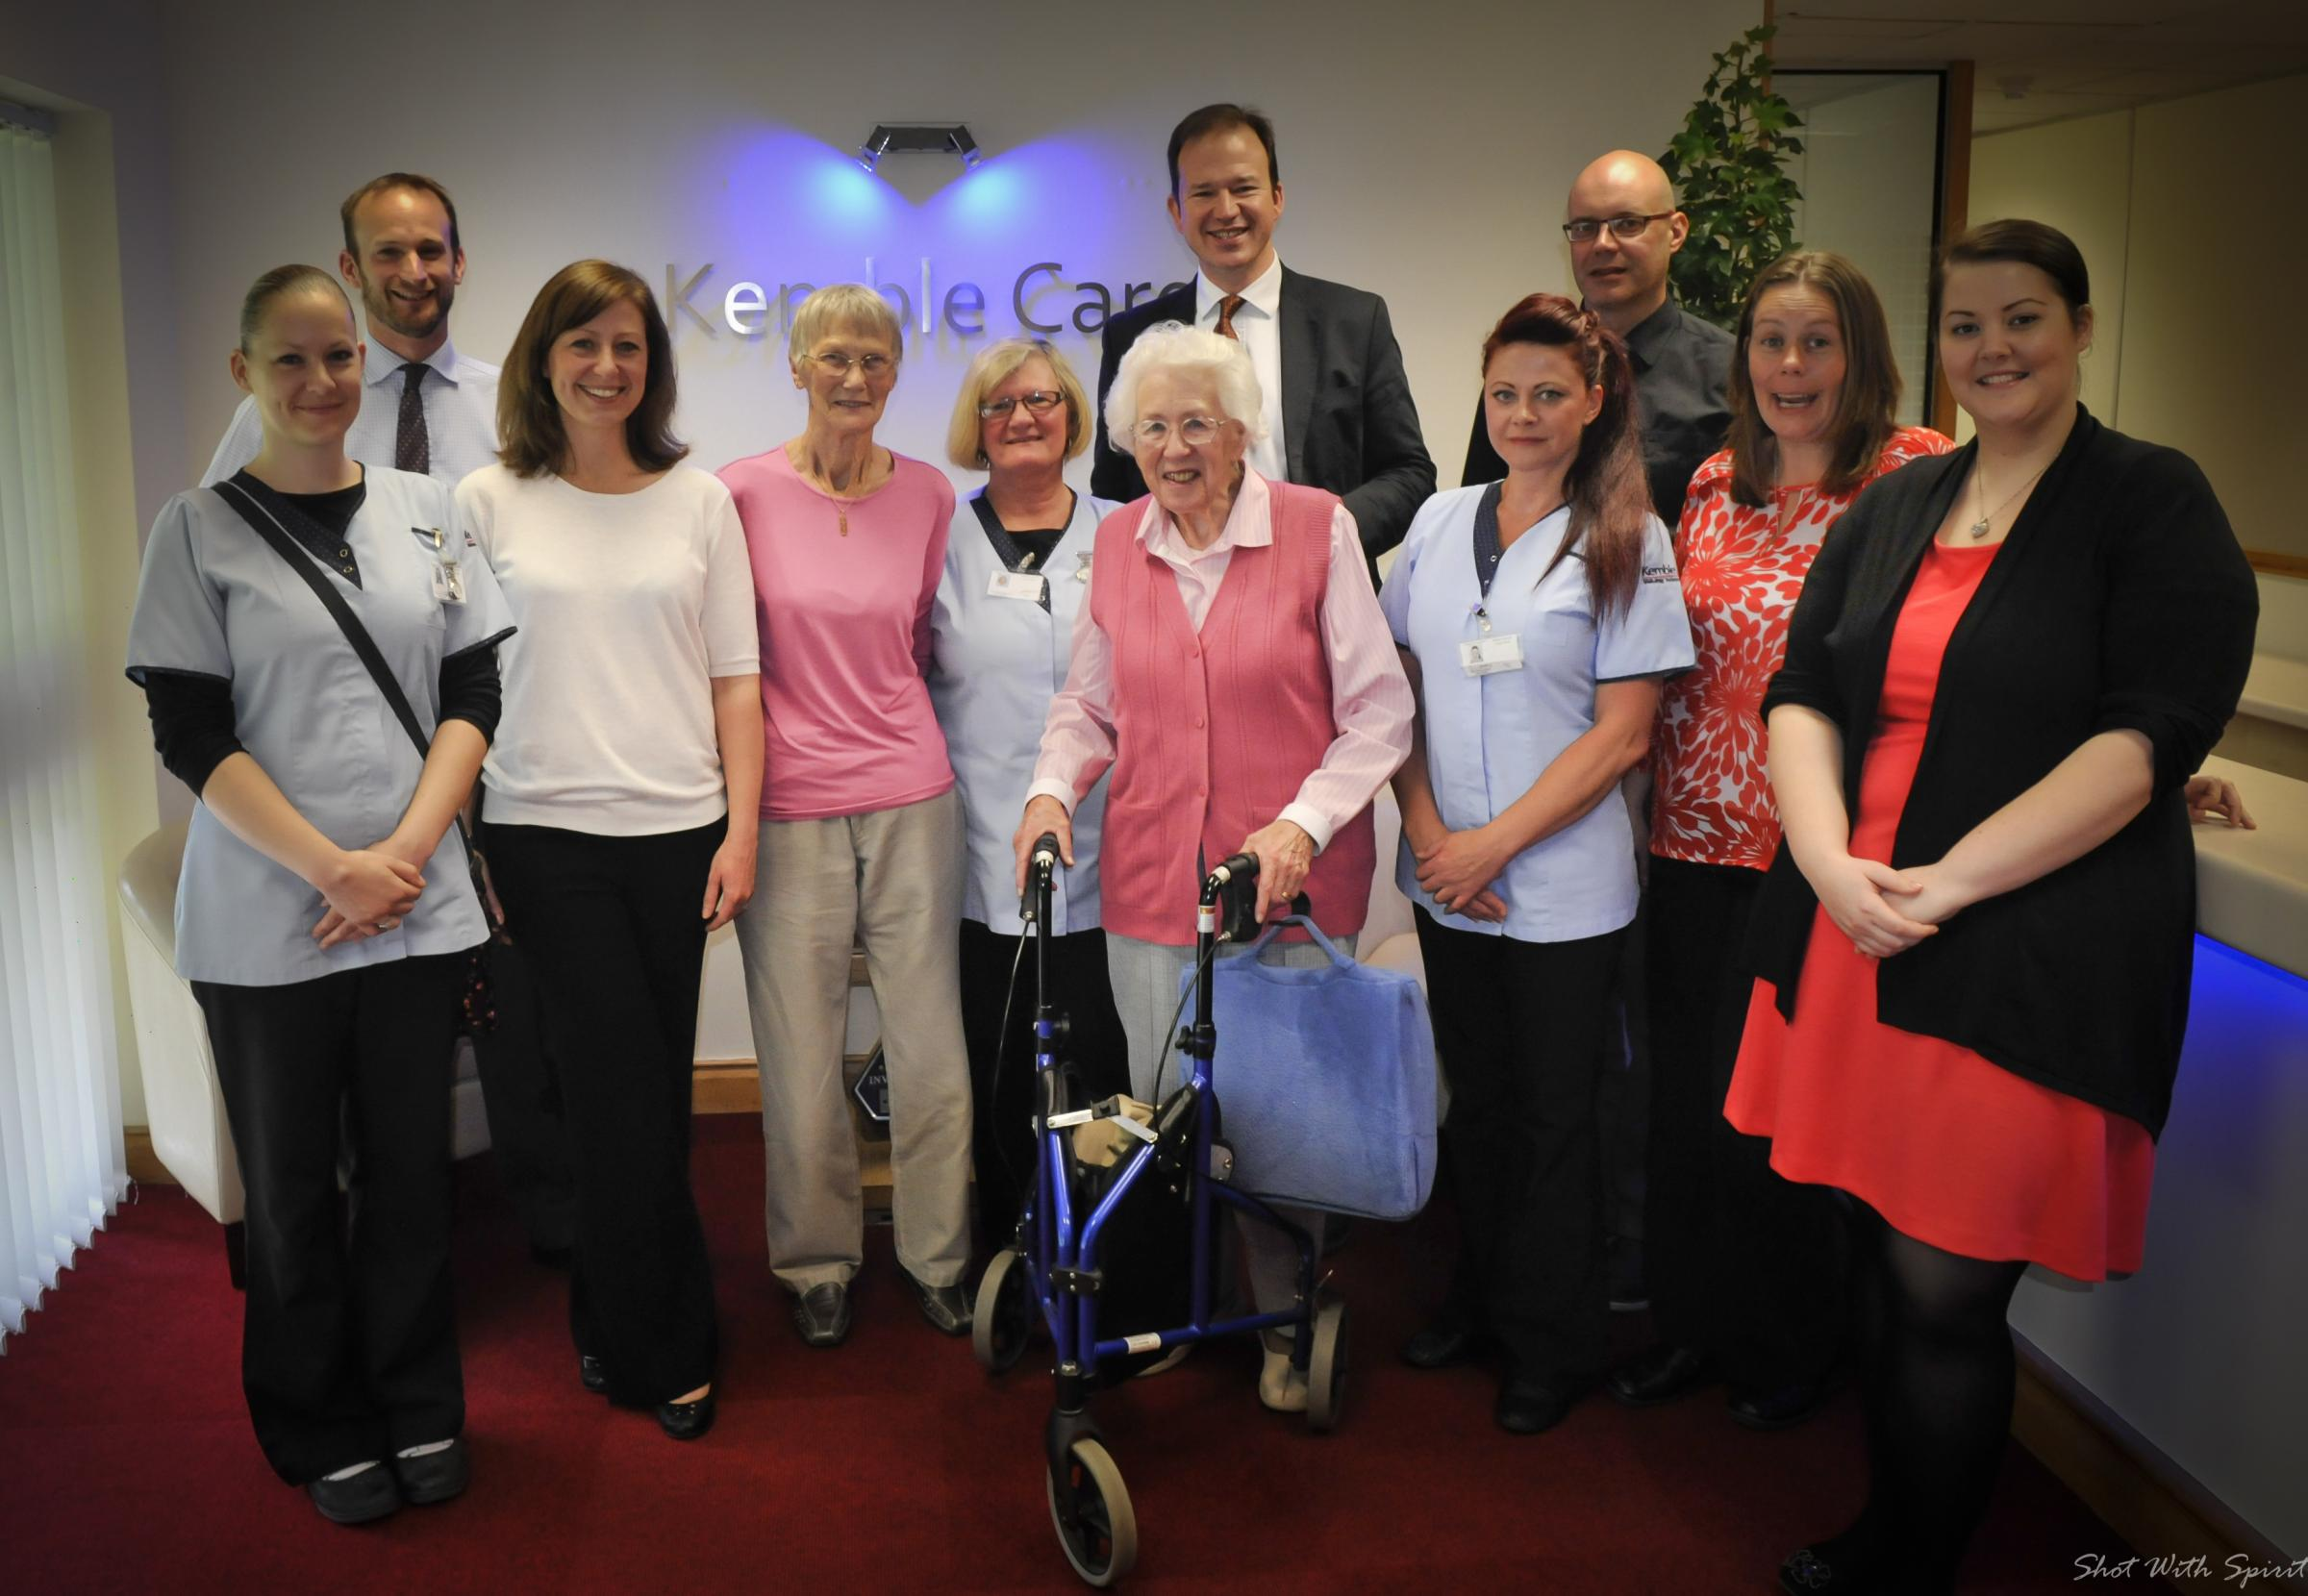 Hereford MP Jesse Norman pictured with staff and clients at Kemble Care's new offices.